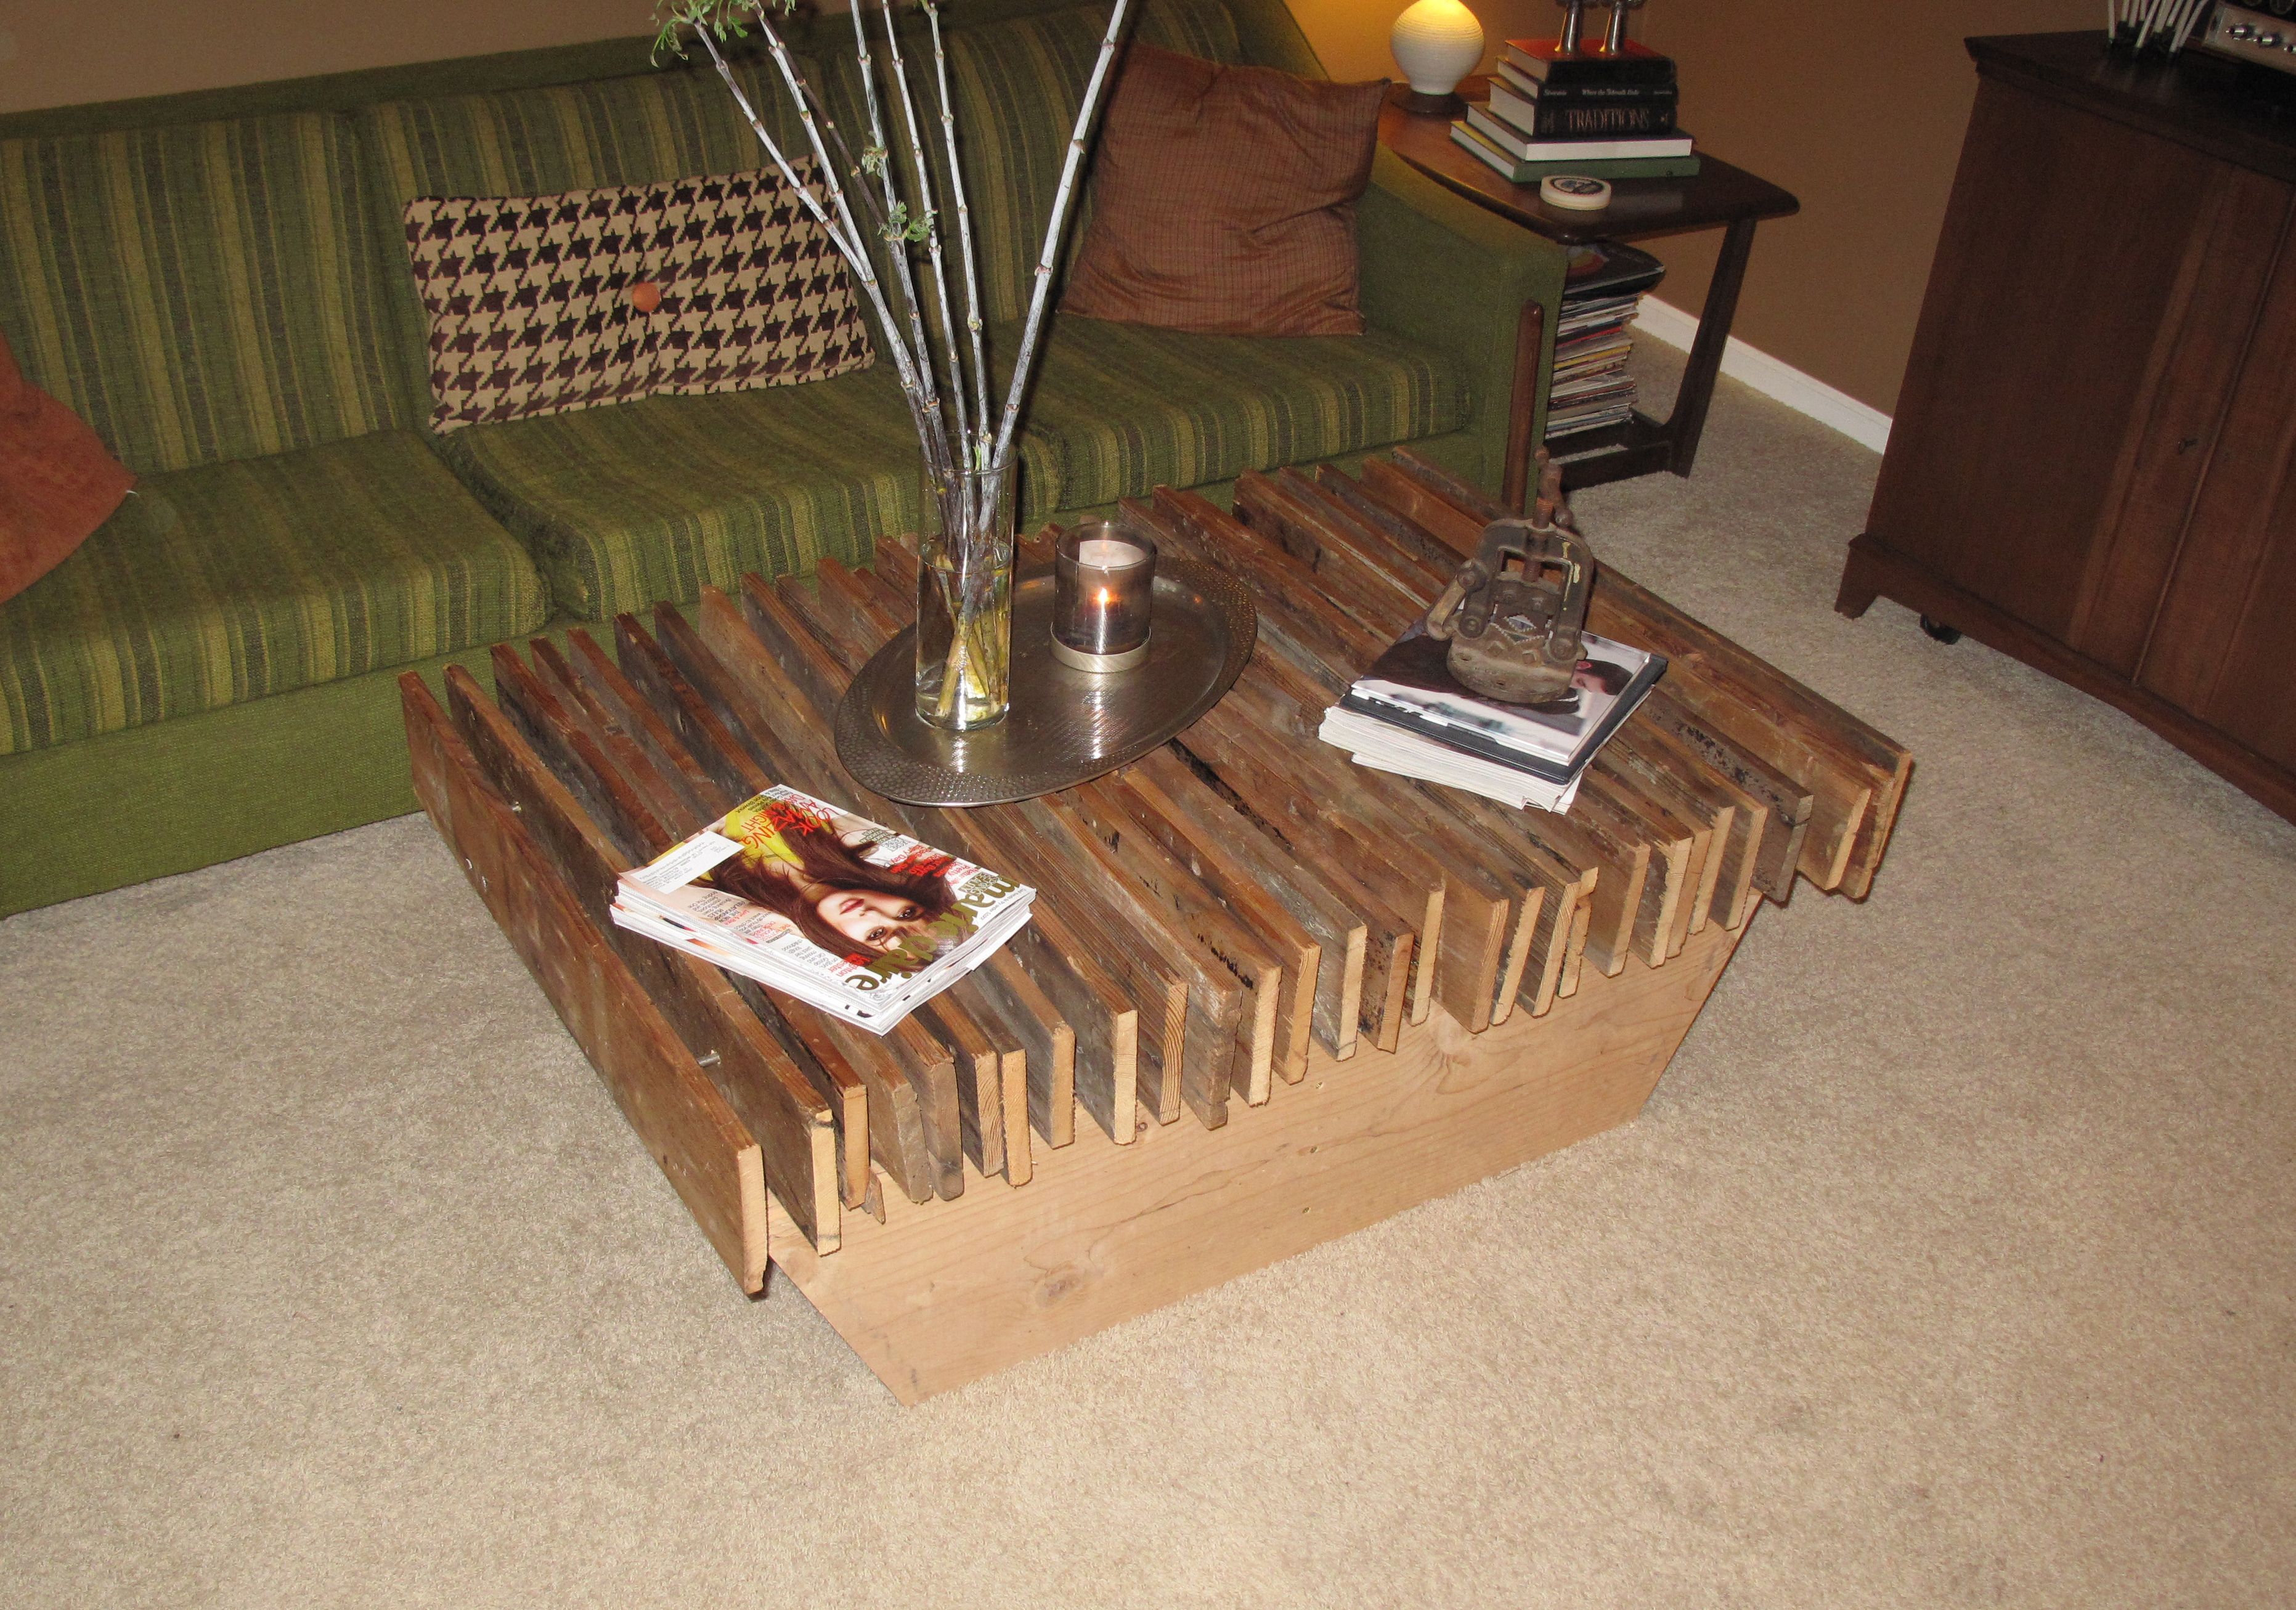 Awesome Reclaimed Rustic Slotted Wood Coffee Table · Homemade ... Idea